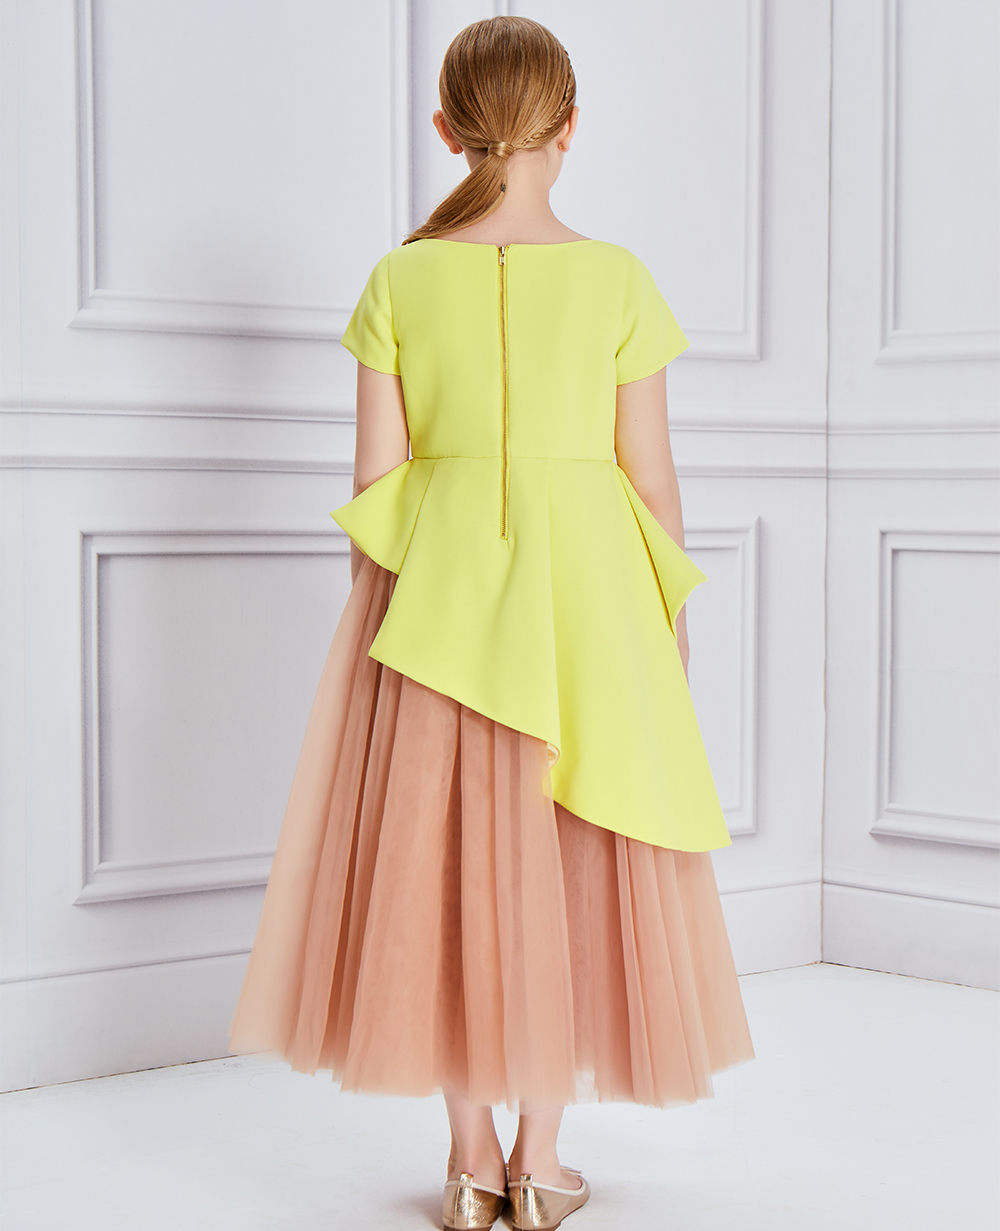 Neon Yellow Embroidery Tulle Dress